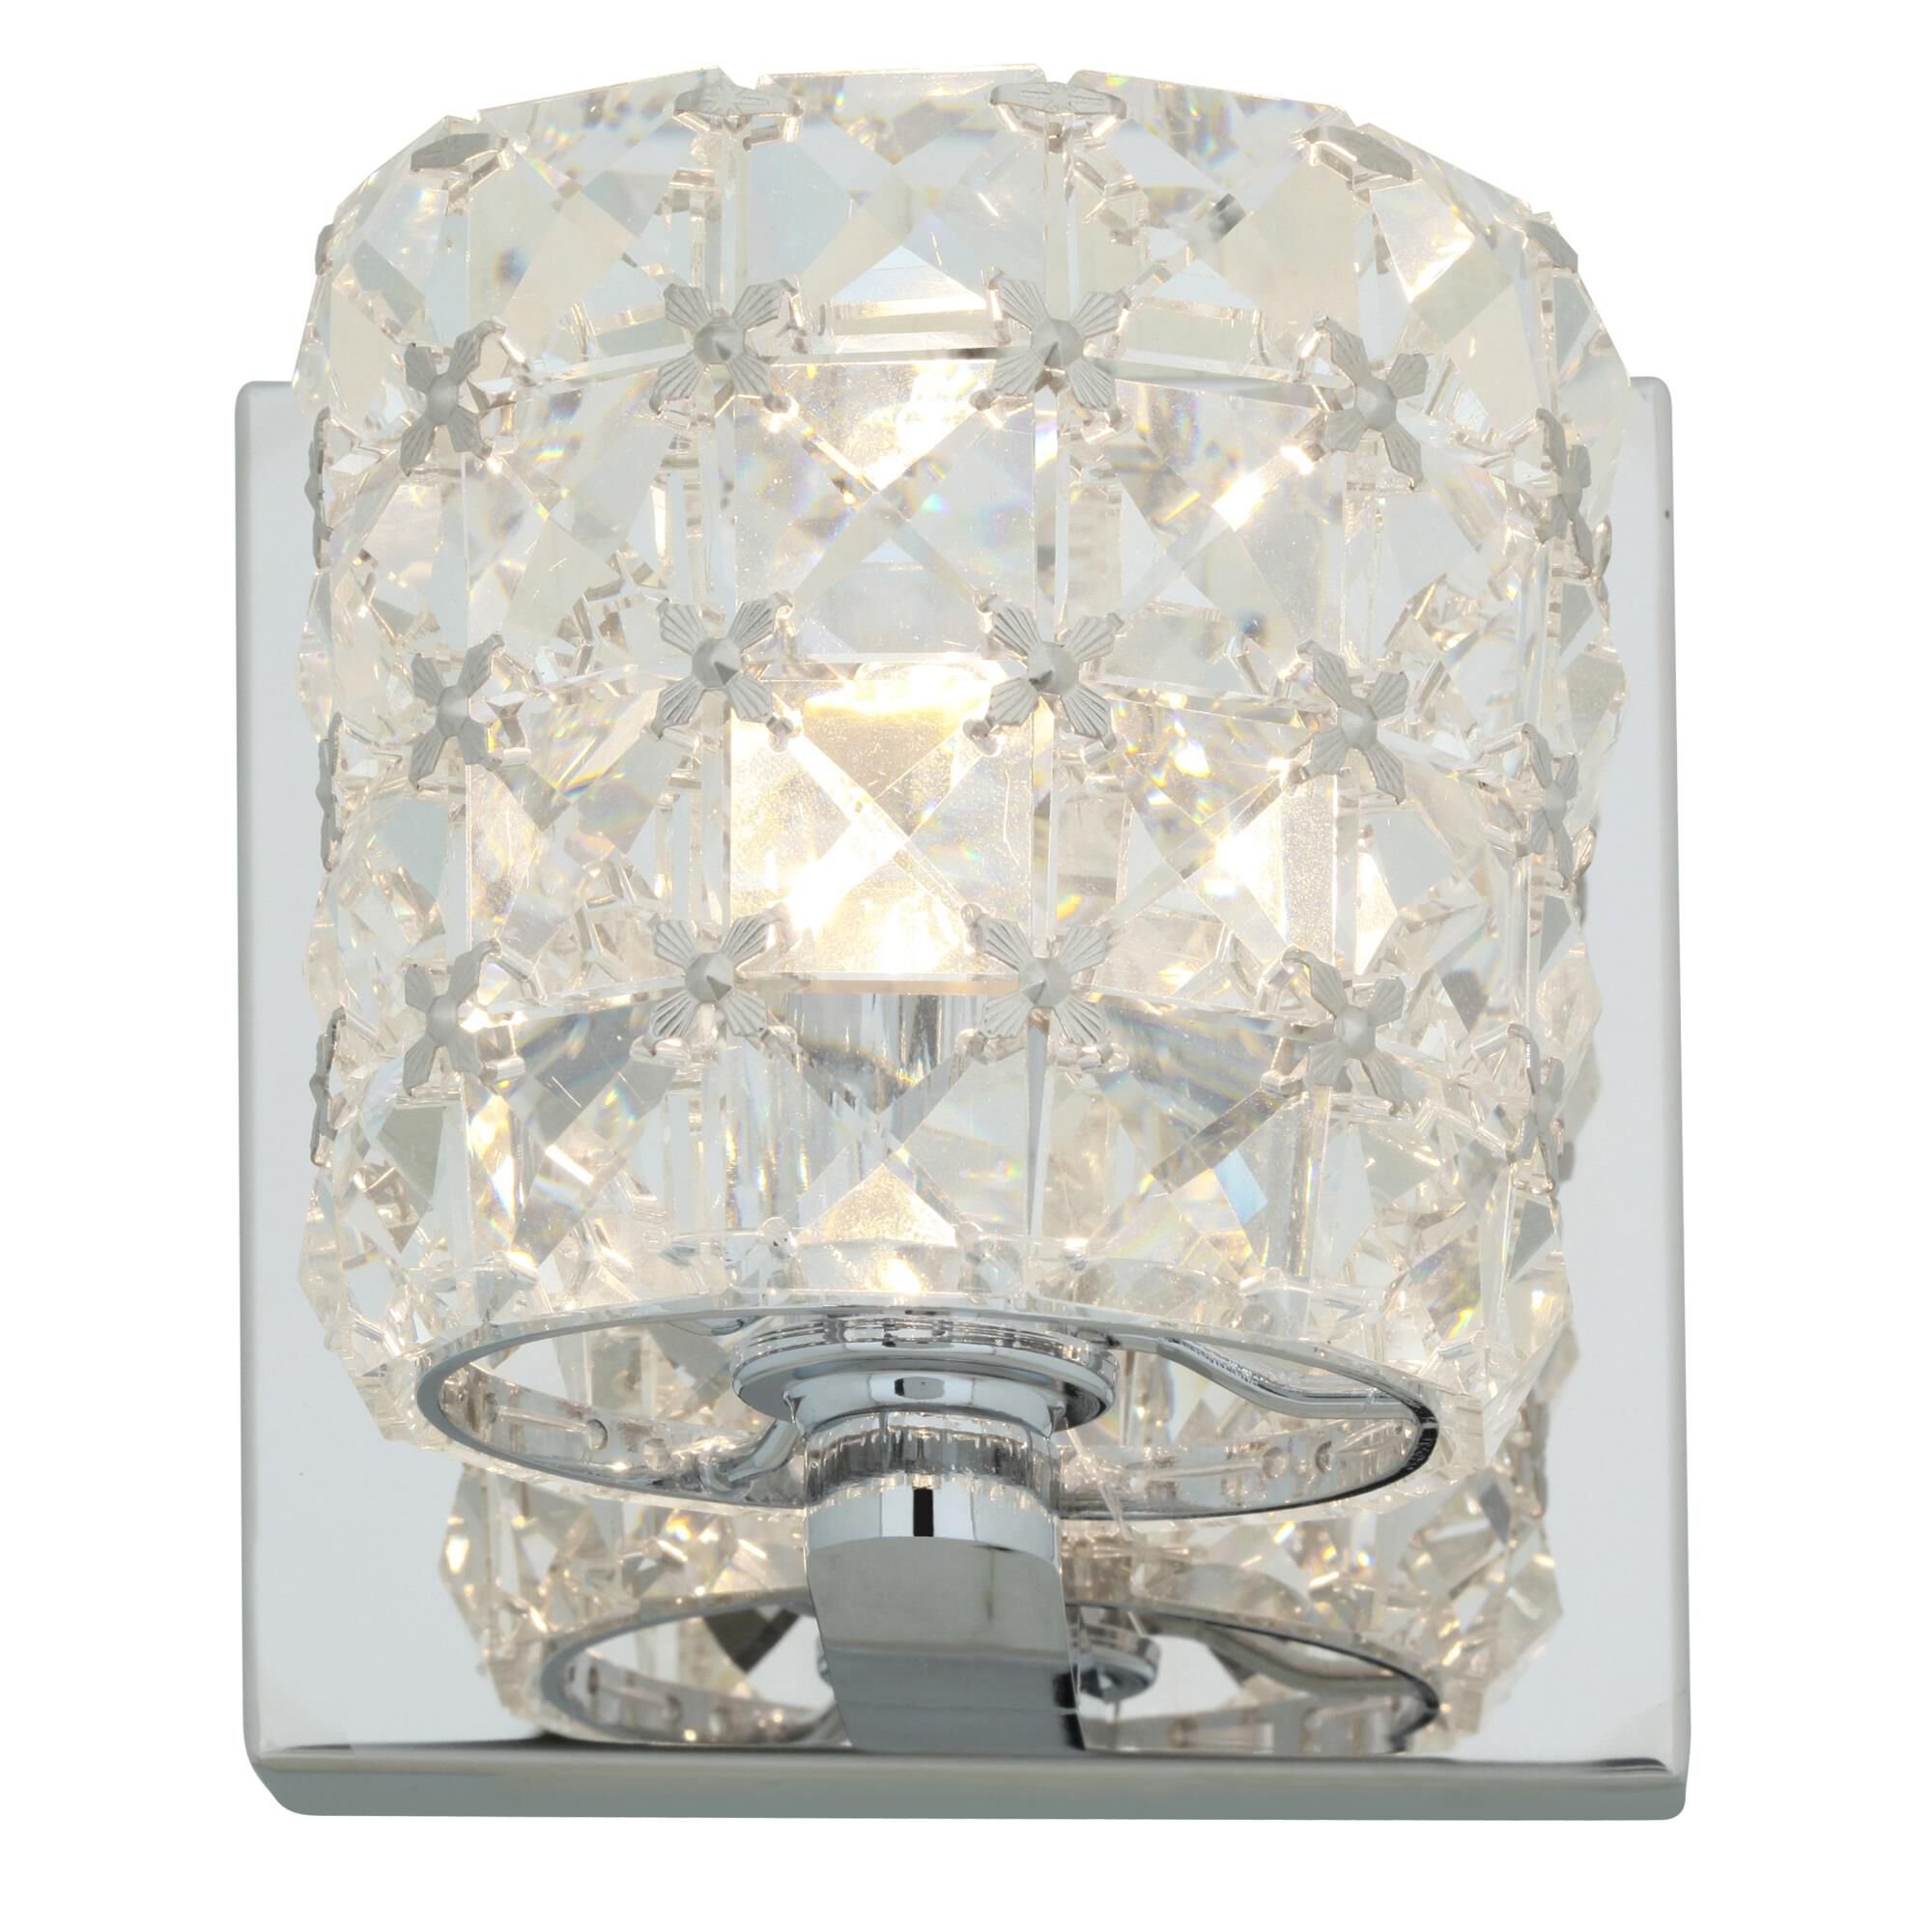 Access Lighting Prizm 4 Inch Wall Sconce Prizm 23920 CHCCL Crystal